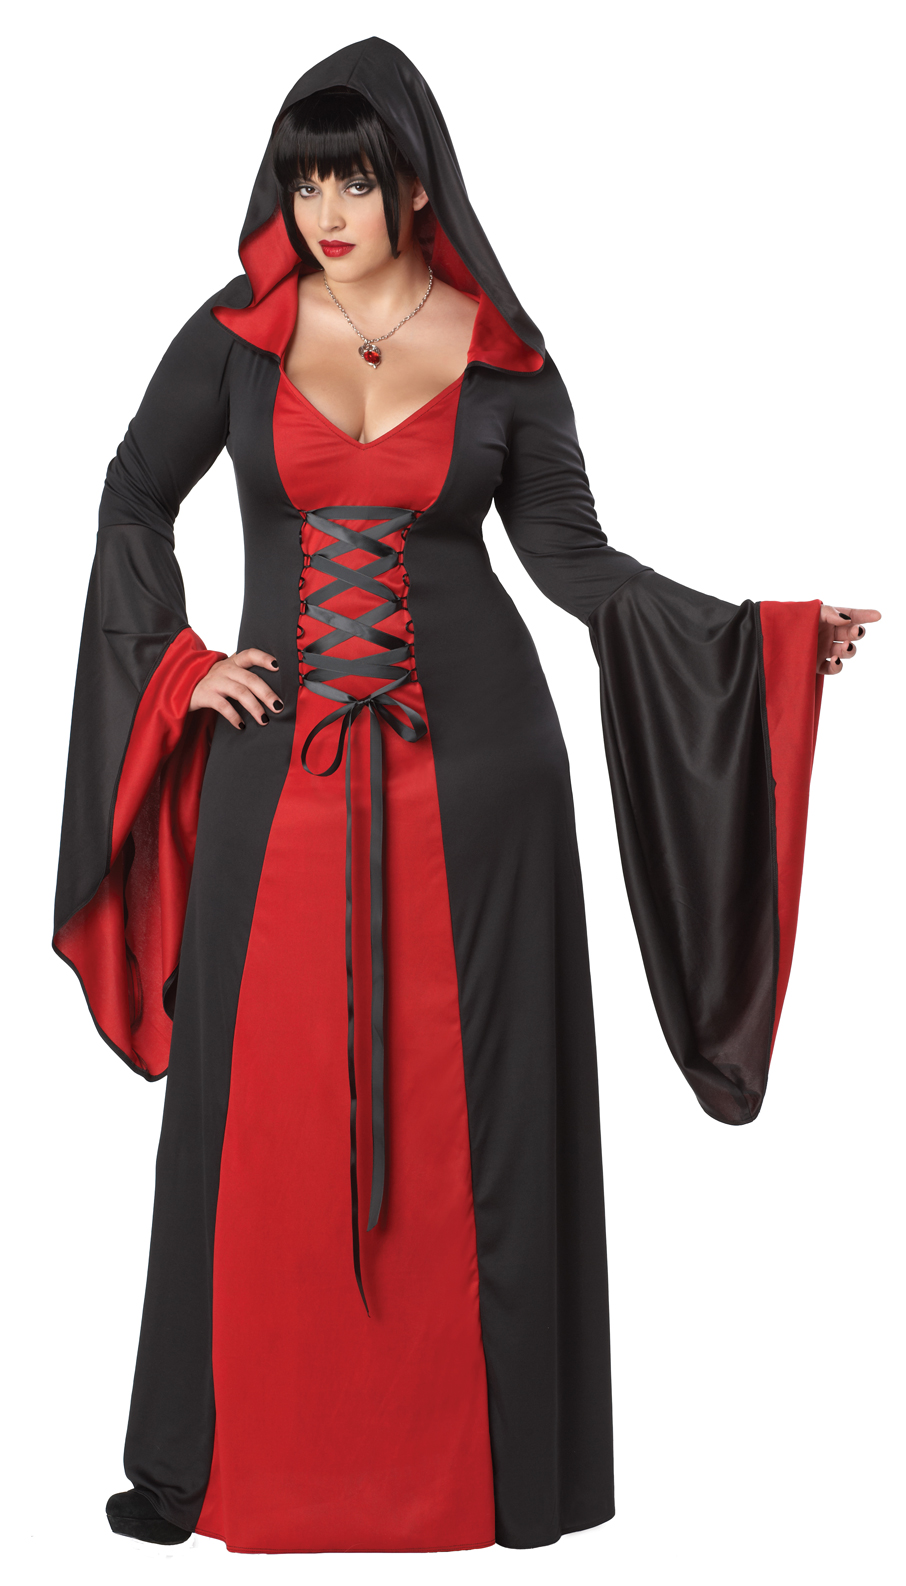 Plus Regular Deluxe Hooded Robe Red Purple Black Halloween Costume V&ire Dress  sc 1 st  eBay & Womenu0027s Deluxe Hooded Robe Vampire Witch Halloween Costume Dress | eBay